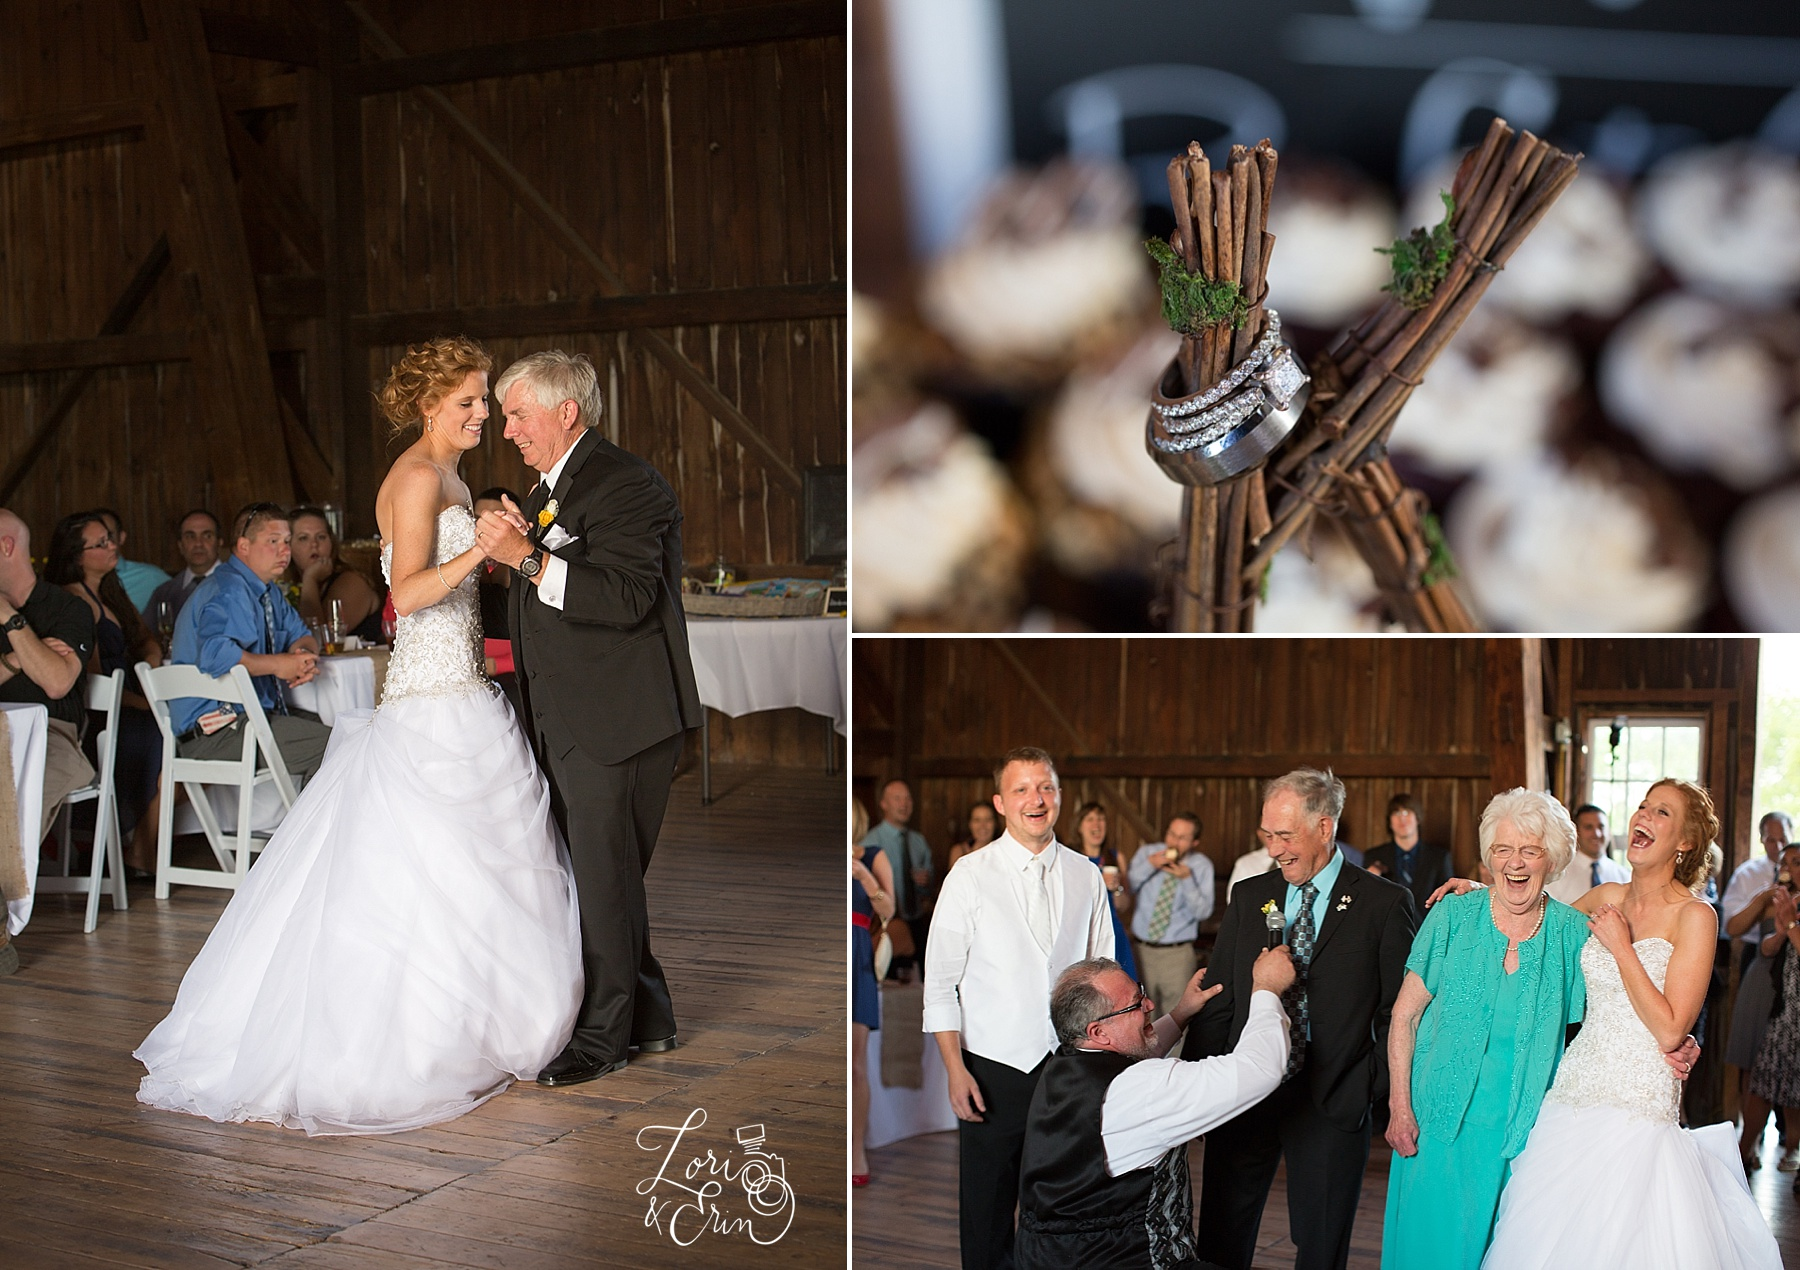 Avon Century Barn Wedding Photography, Bride & Groom